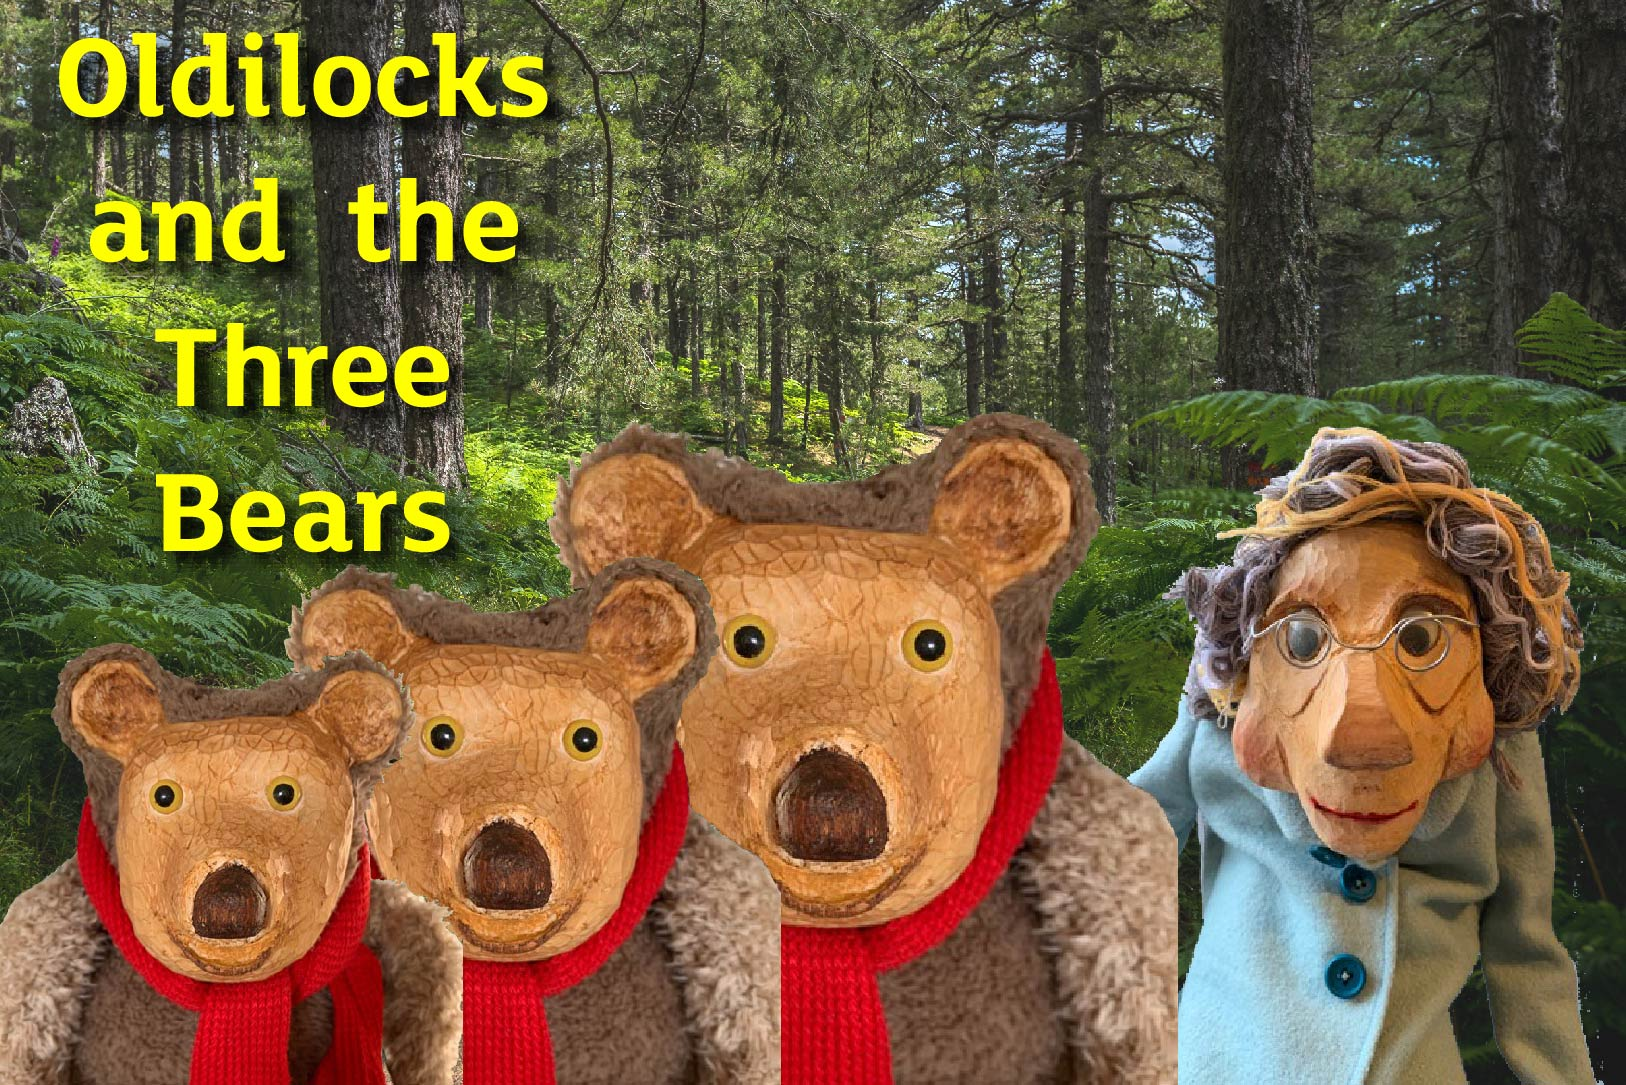 Oldilocks and the Three Bears